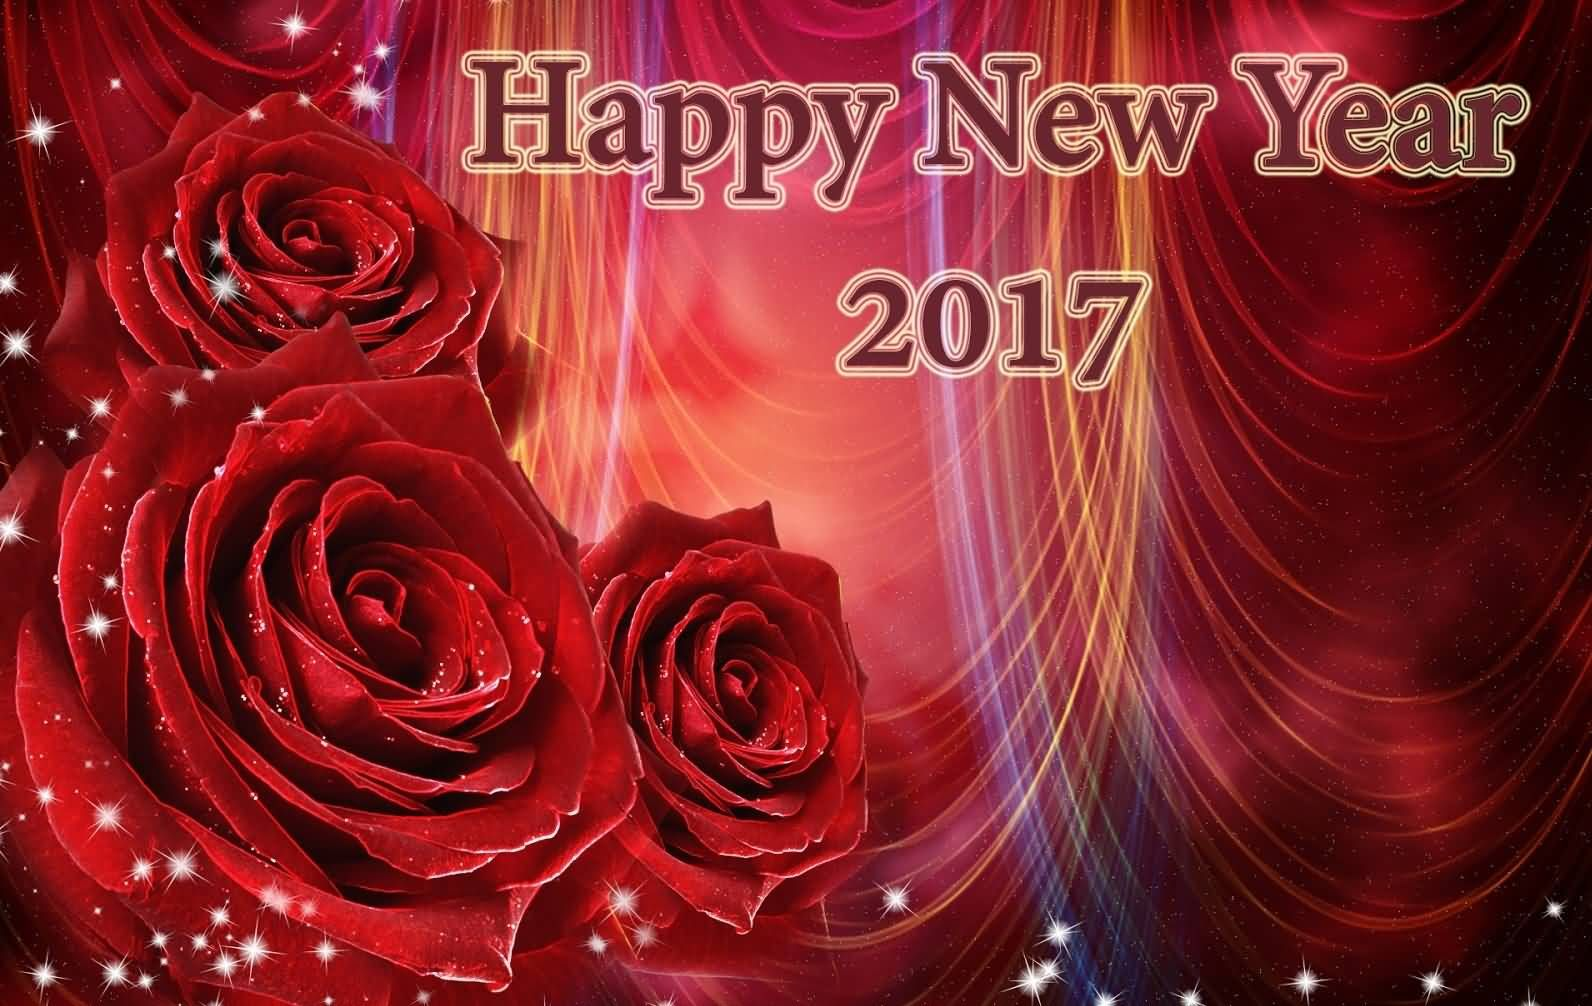 Happy New Year 2017 Rose Flowers Picture  Happy new year 2017